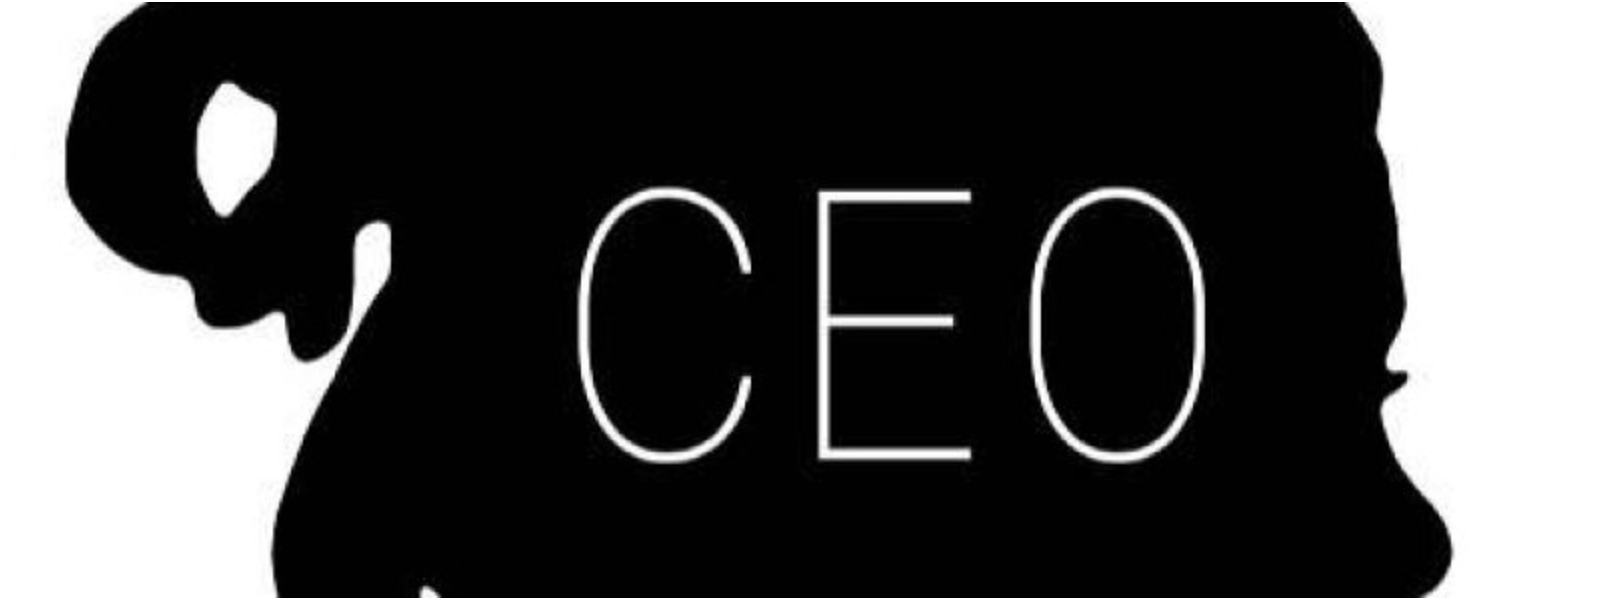 CEO Lit Mag - Issue 2The Giveaway, a piece of nonfiction, was published in Issue 2. You can read it here.Issue 1Two pieces by R.R. Noall appeared in Issue 1 of CEO lit mag: A Woman, a poem, and Heartbreak 2x, a piece of nonfiction. You can read them here.